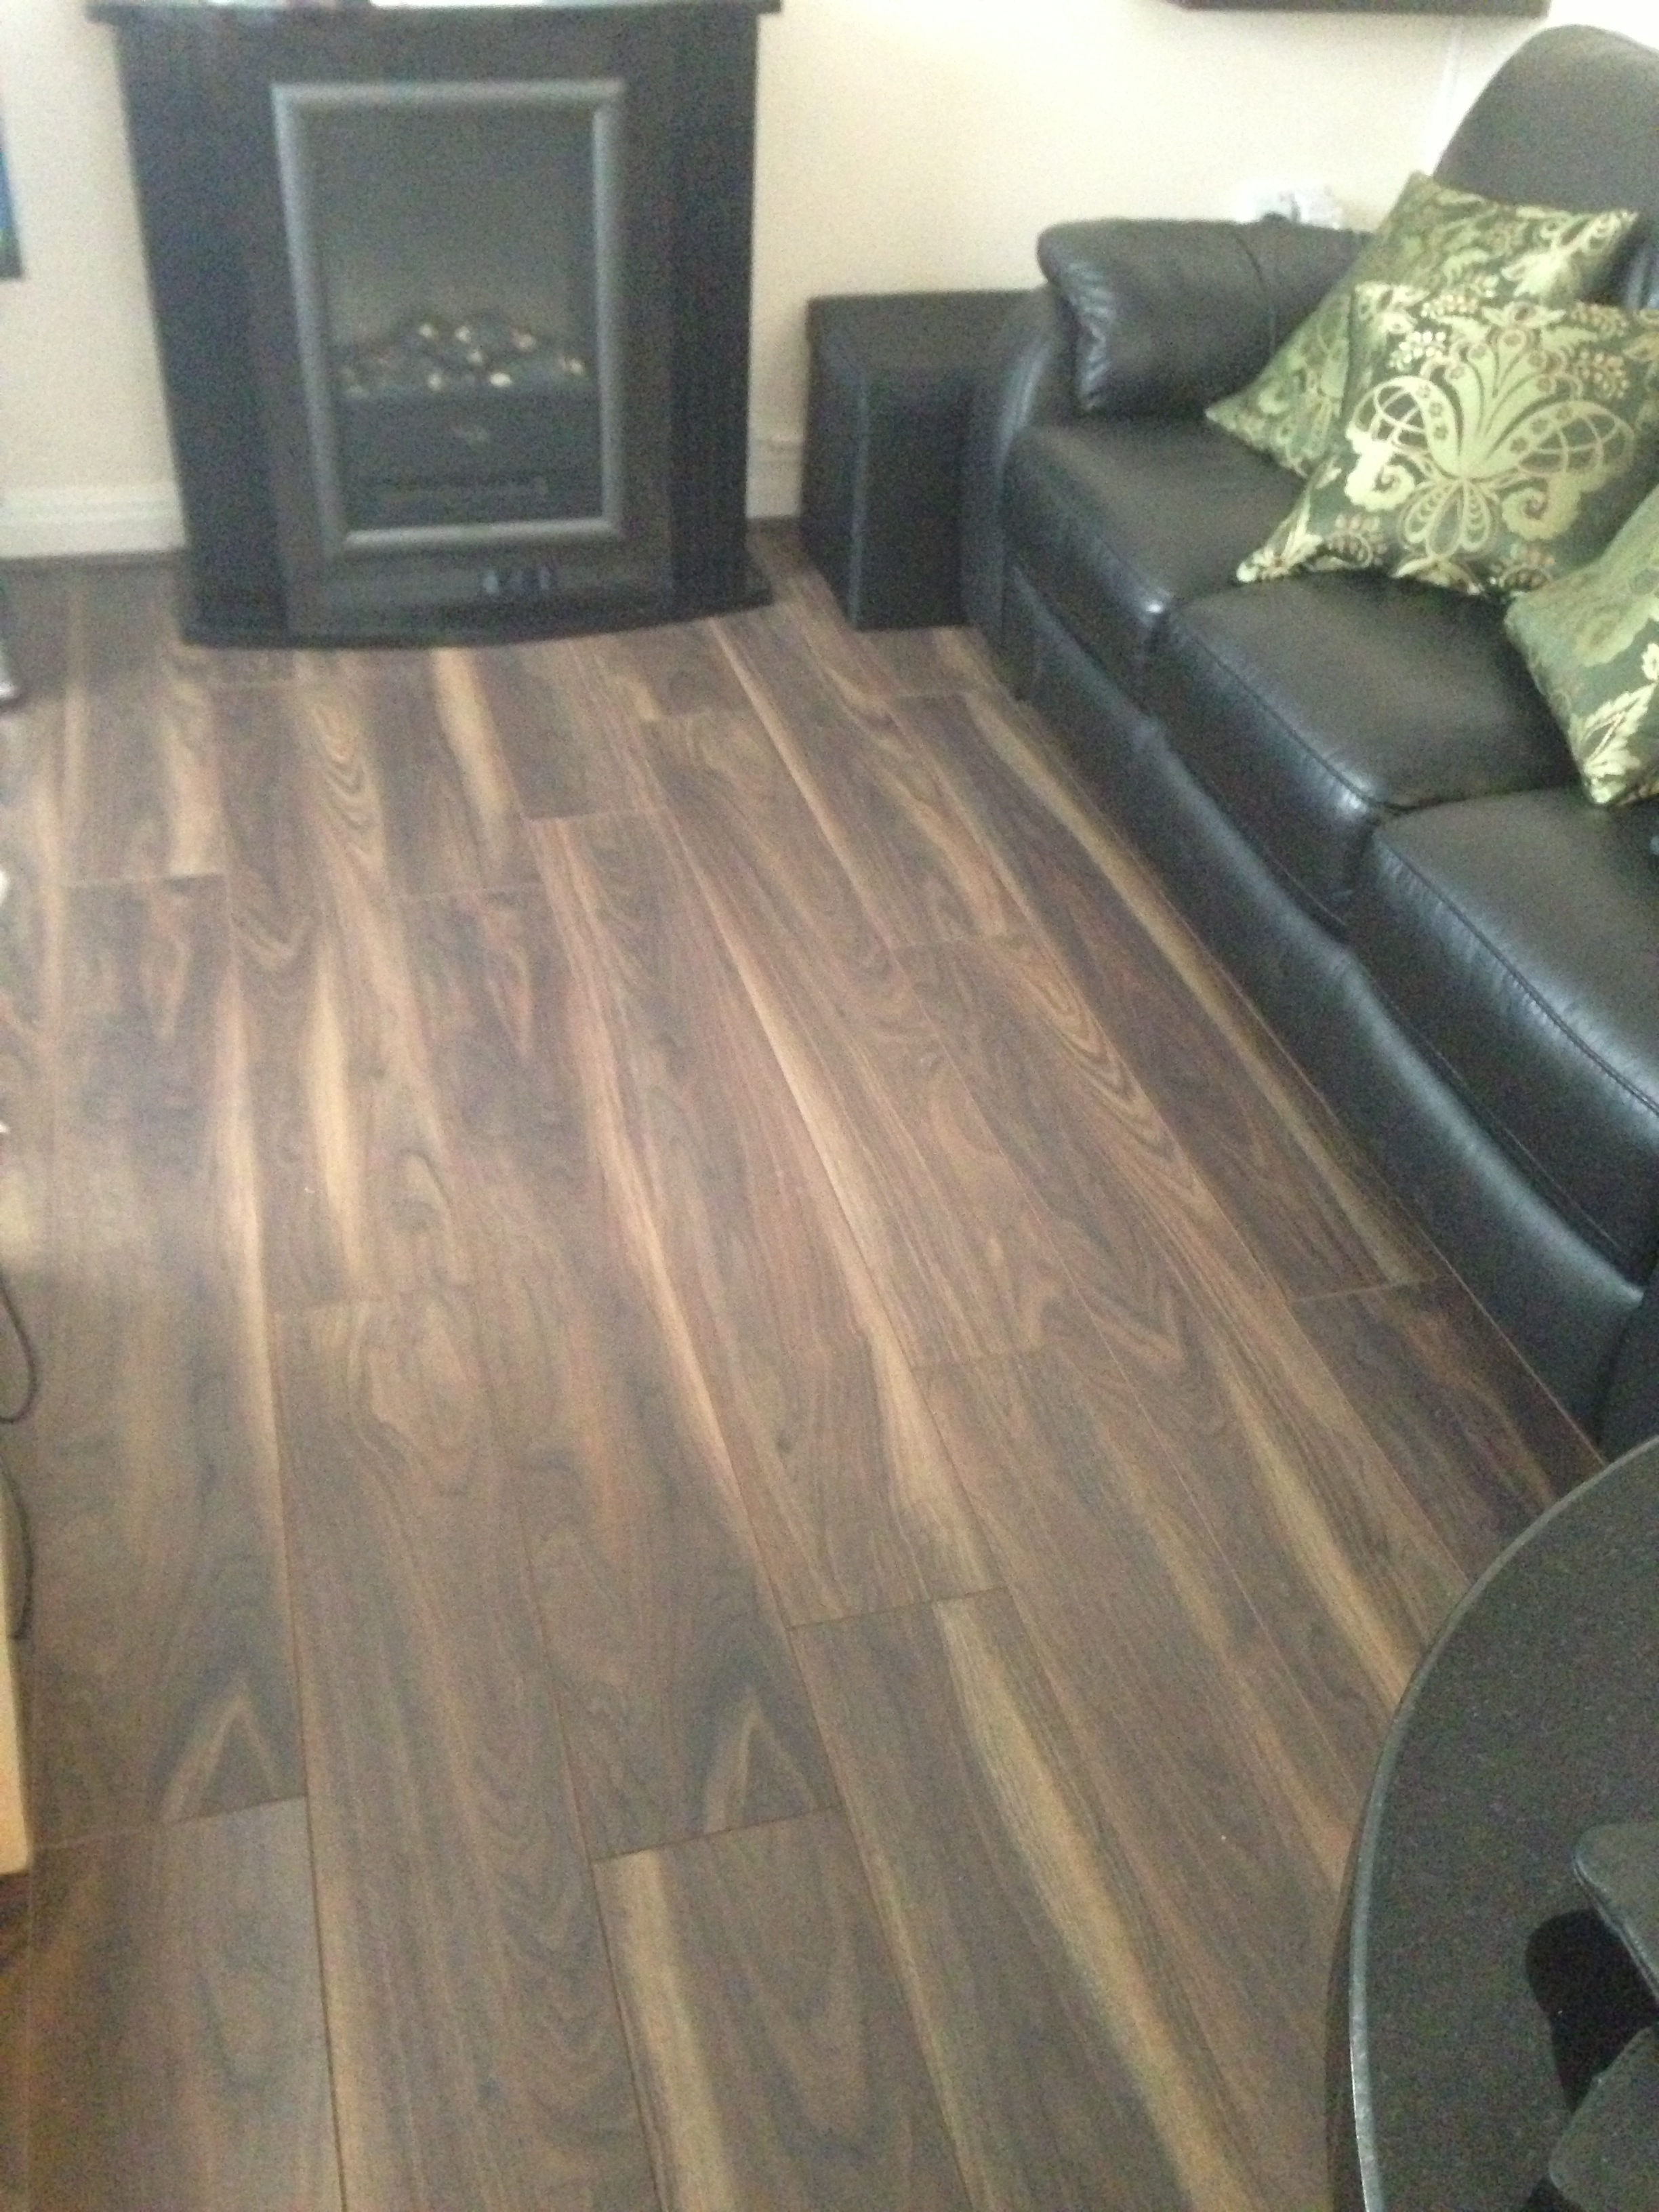 Kaindl Laminate Floors Leeds